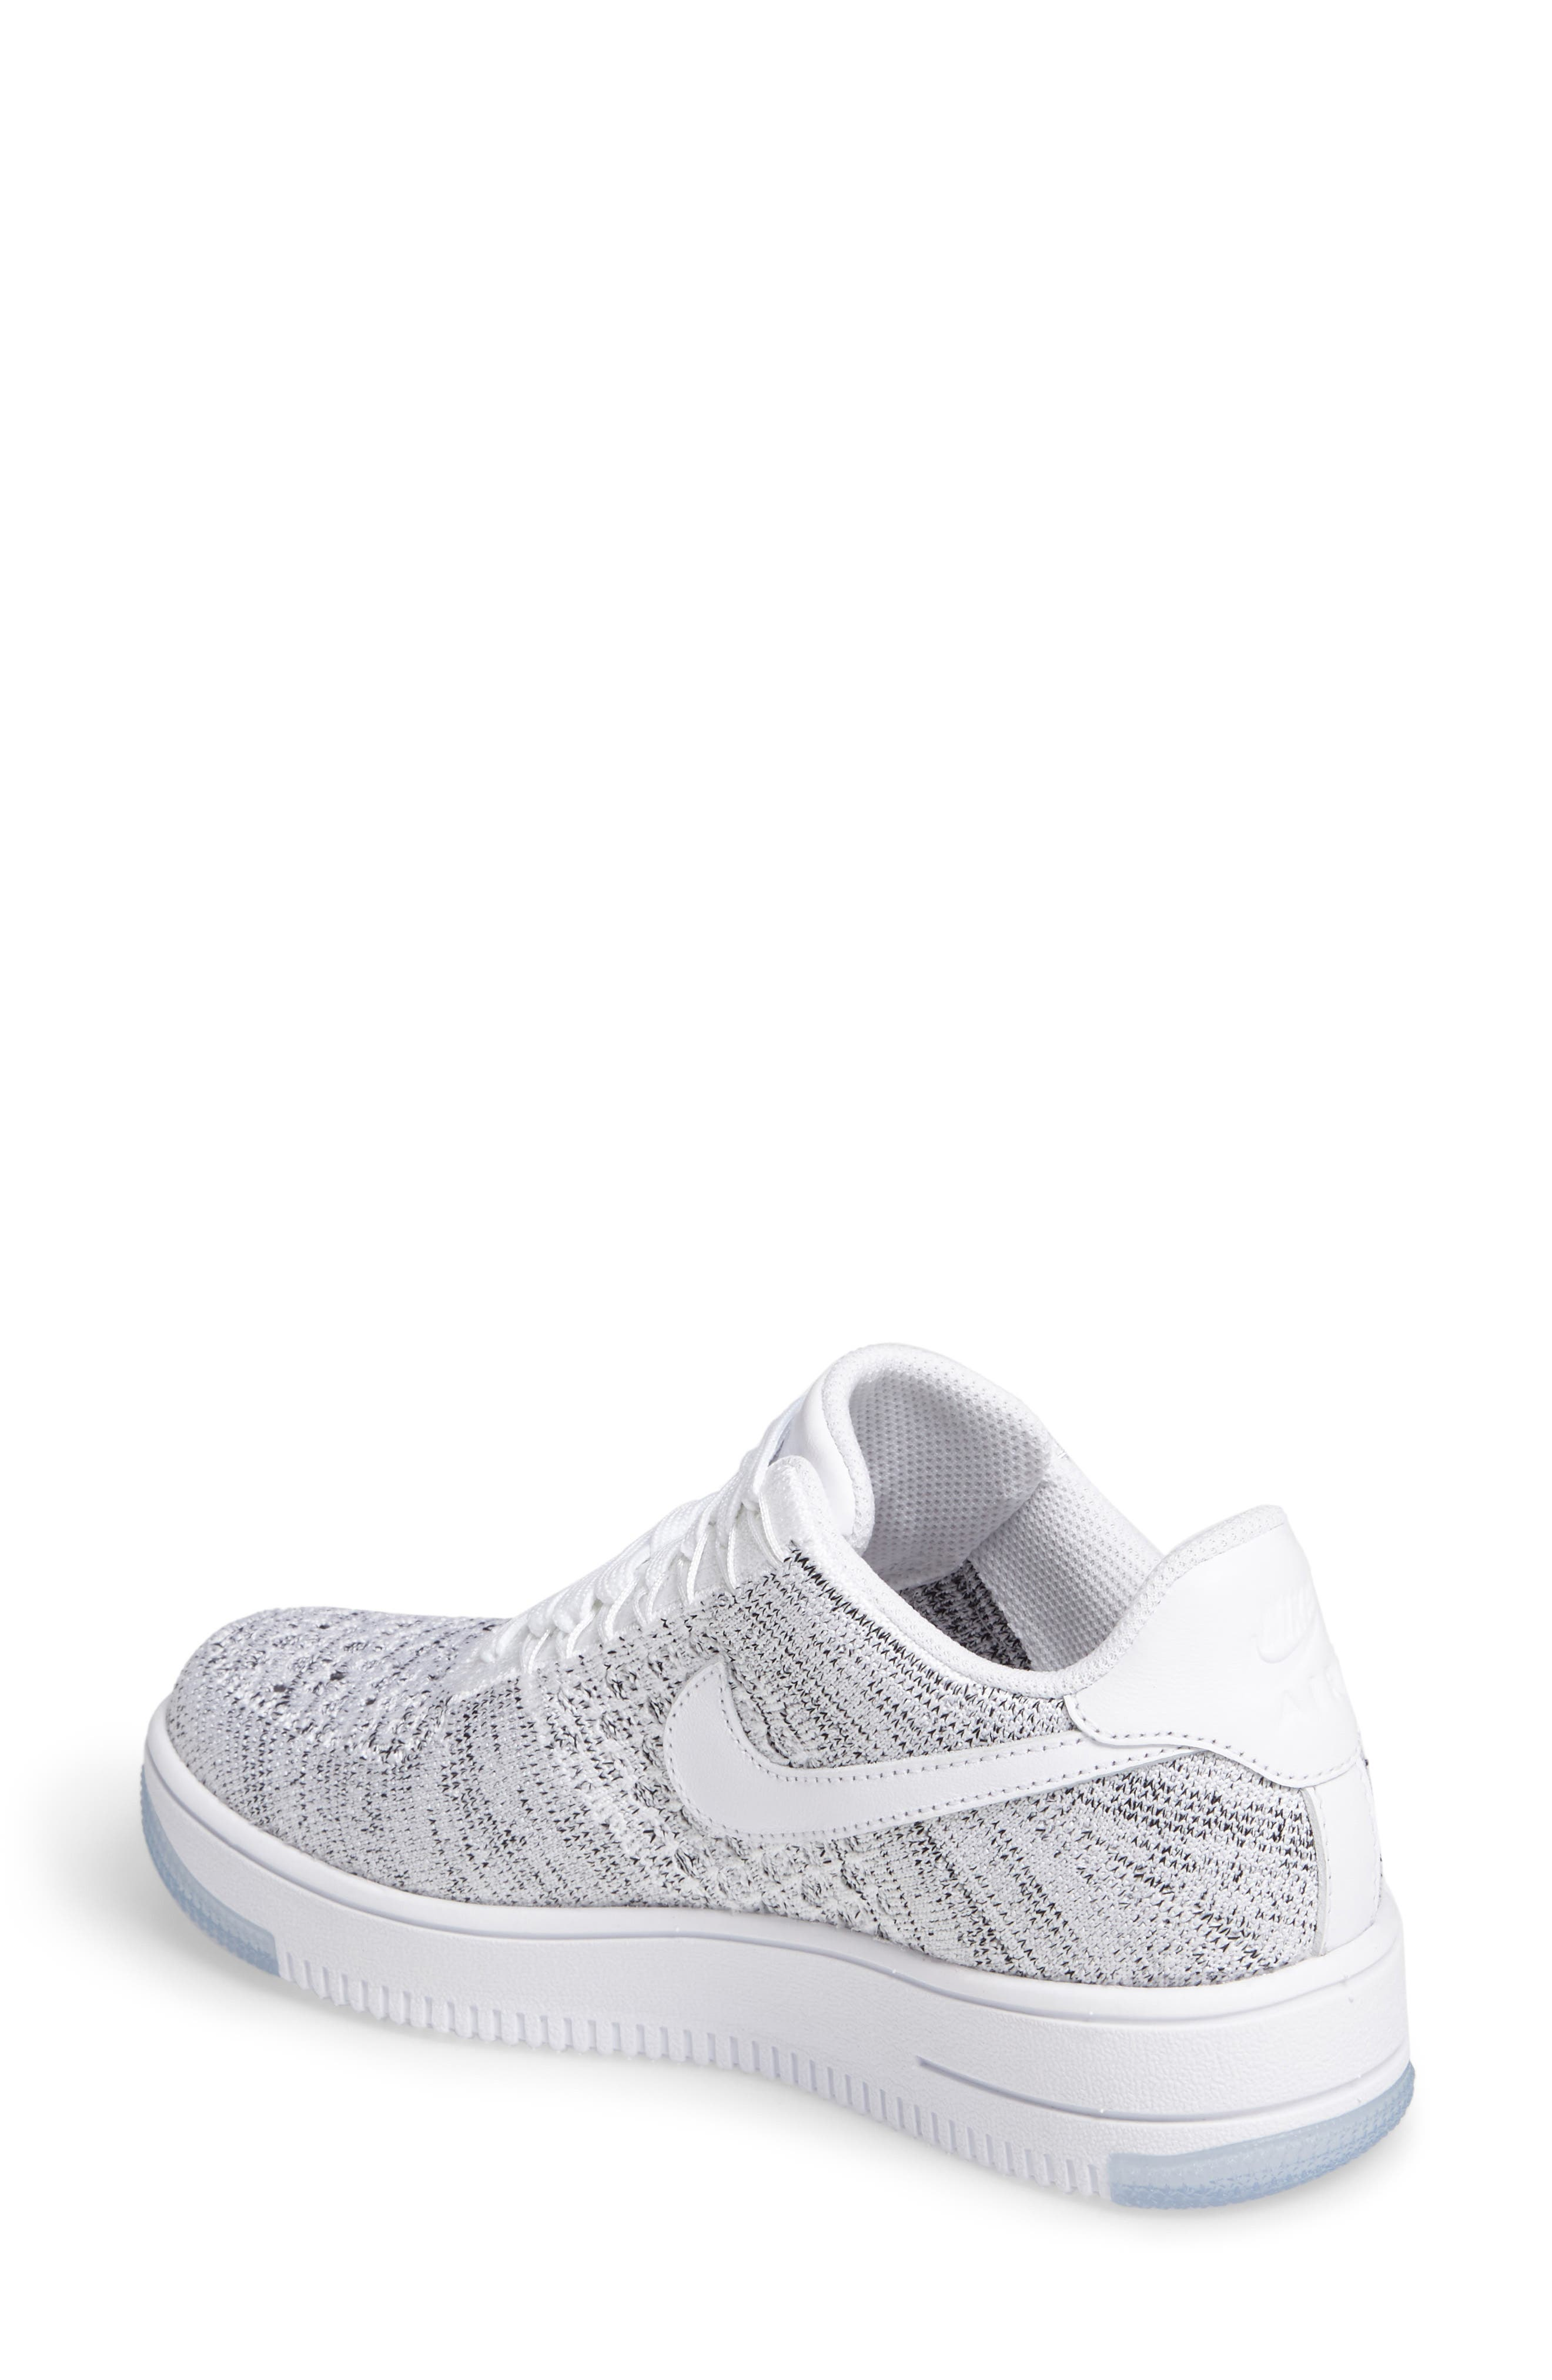 'Air Force 1 Flyknit Low' Sneaker,                             Alternate thumbnail 12, color,